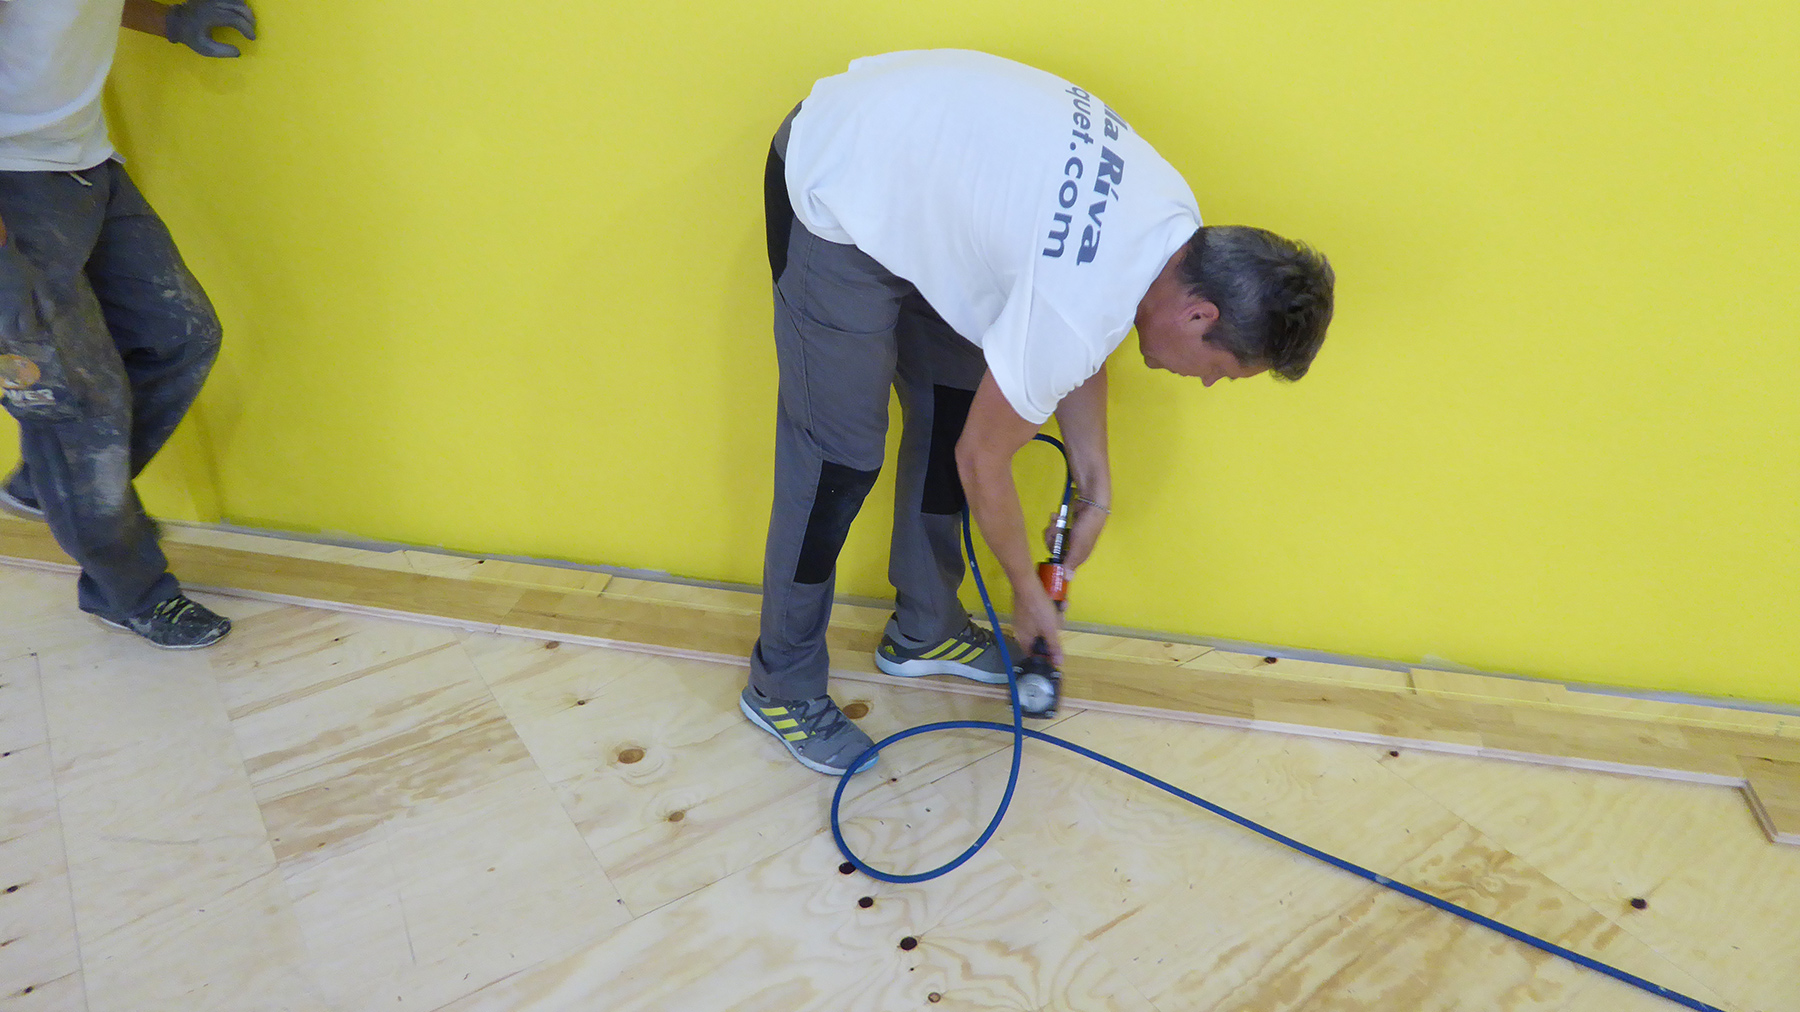 Dalla Riva technicians engaged with the laying of parquet